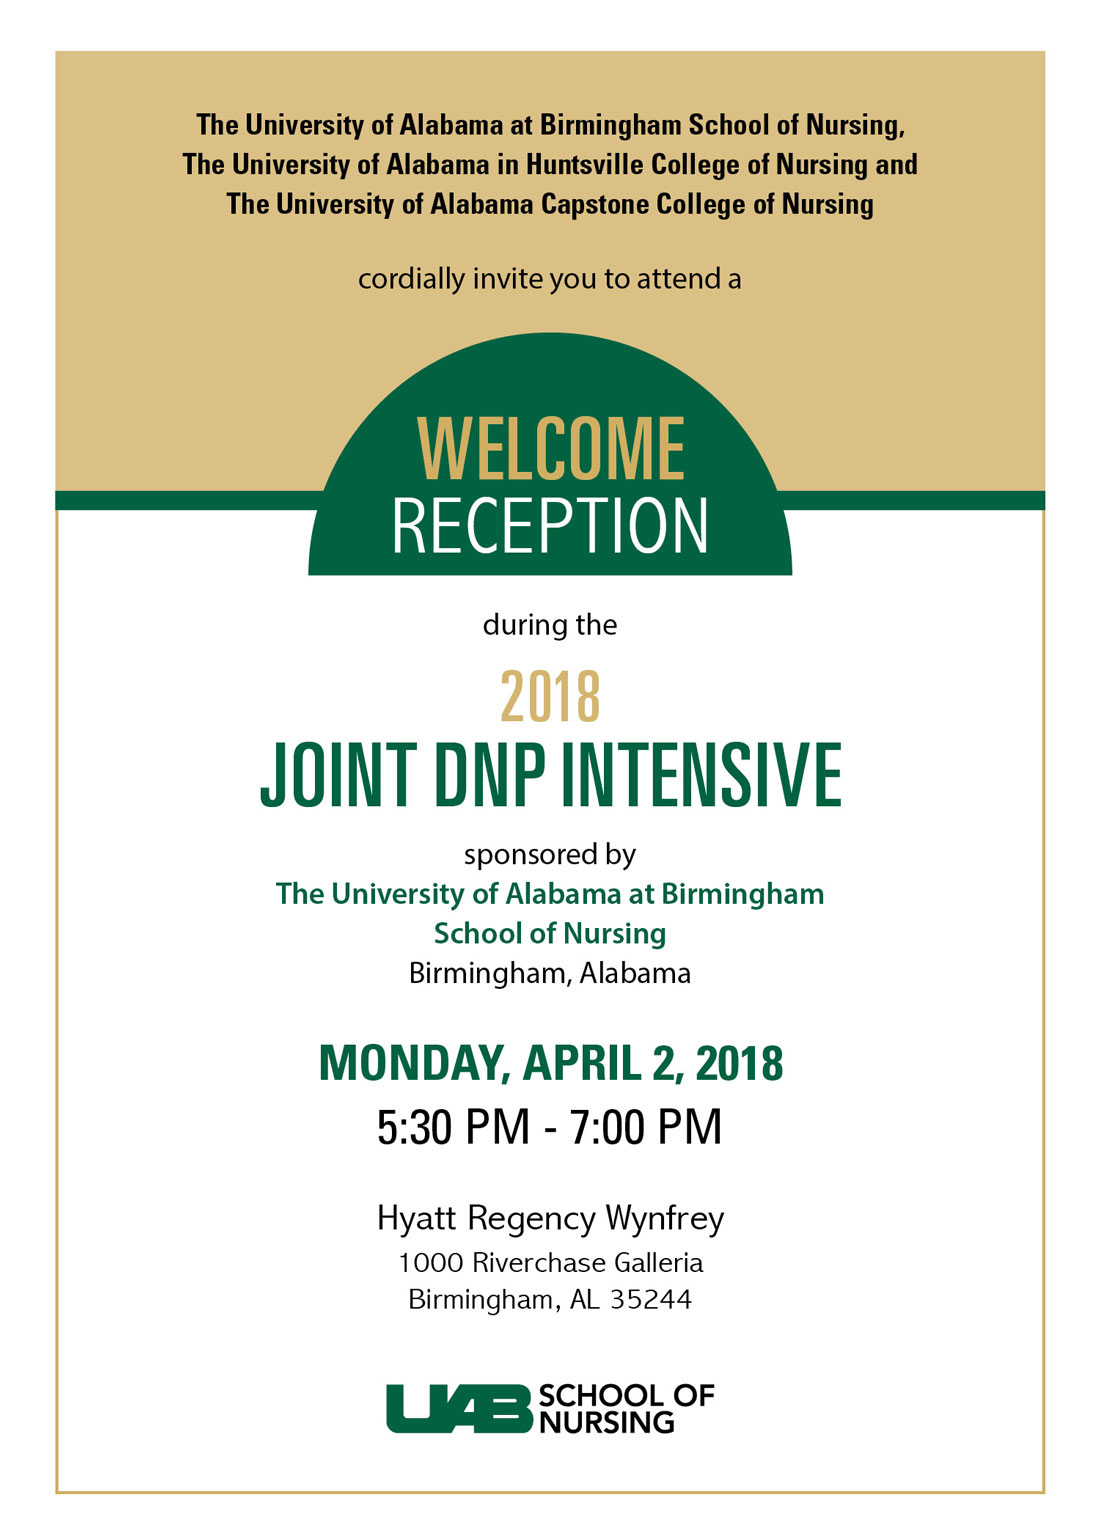 joint dnp reception invitation